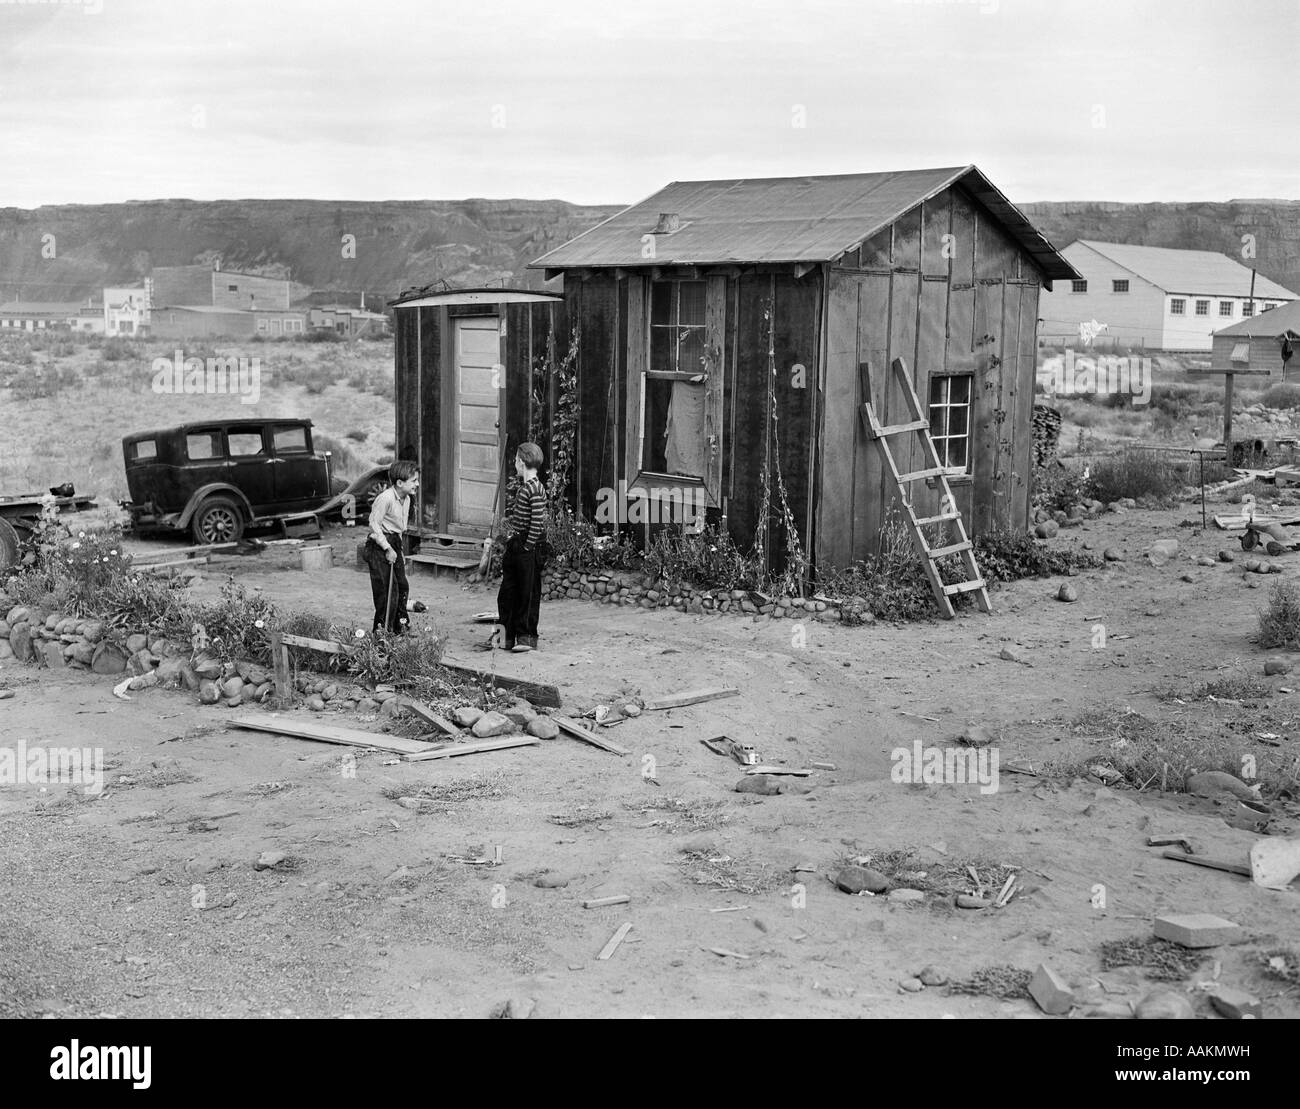 Houses With Porches 1930s Poverty Scene With Two Boys Playing In Front Of